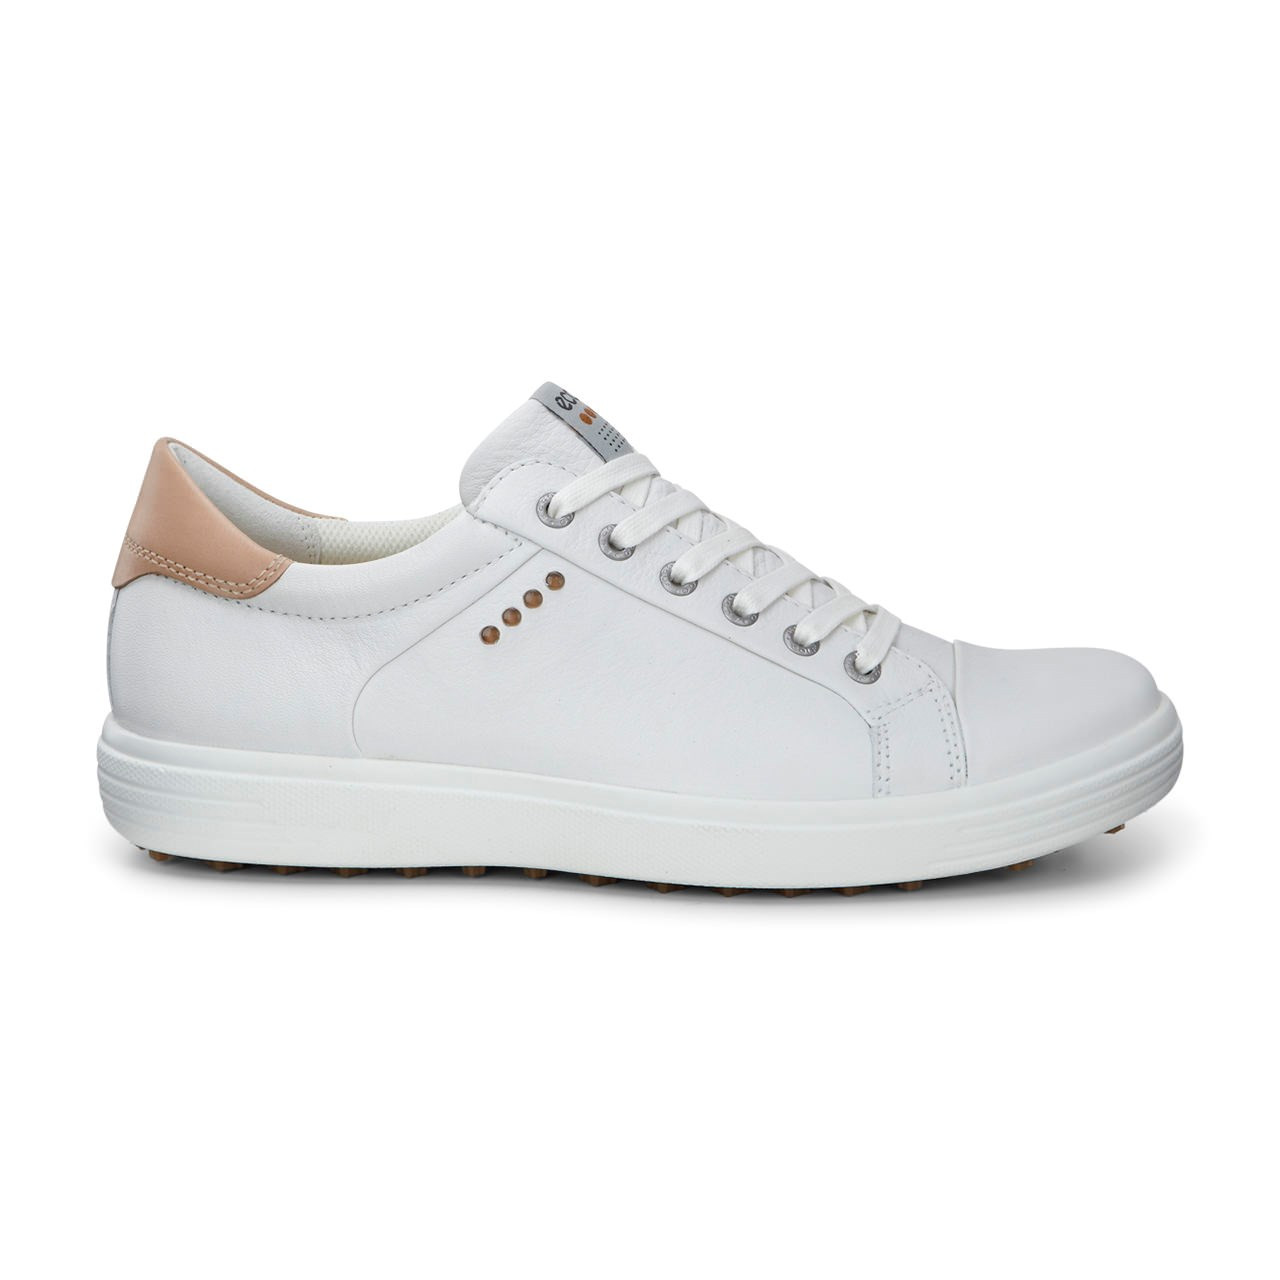 2aec4195085c Ecco Men s Casual Hybrid Golf Shoes White Extra Width Option Size 42 ...